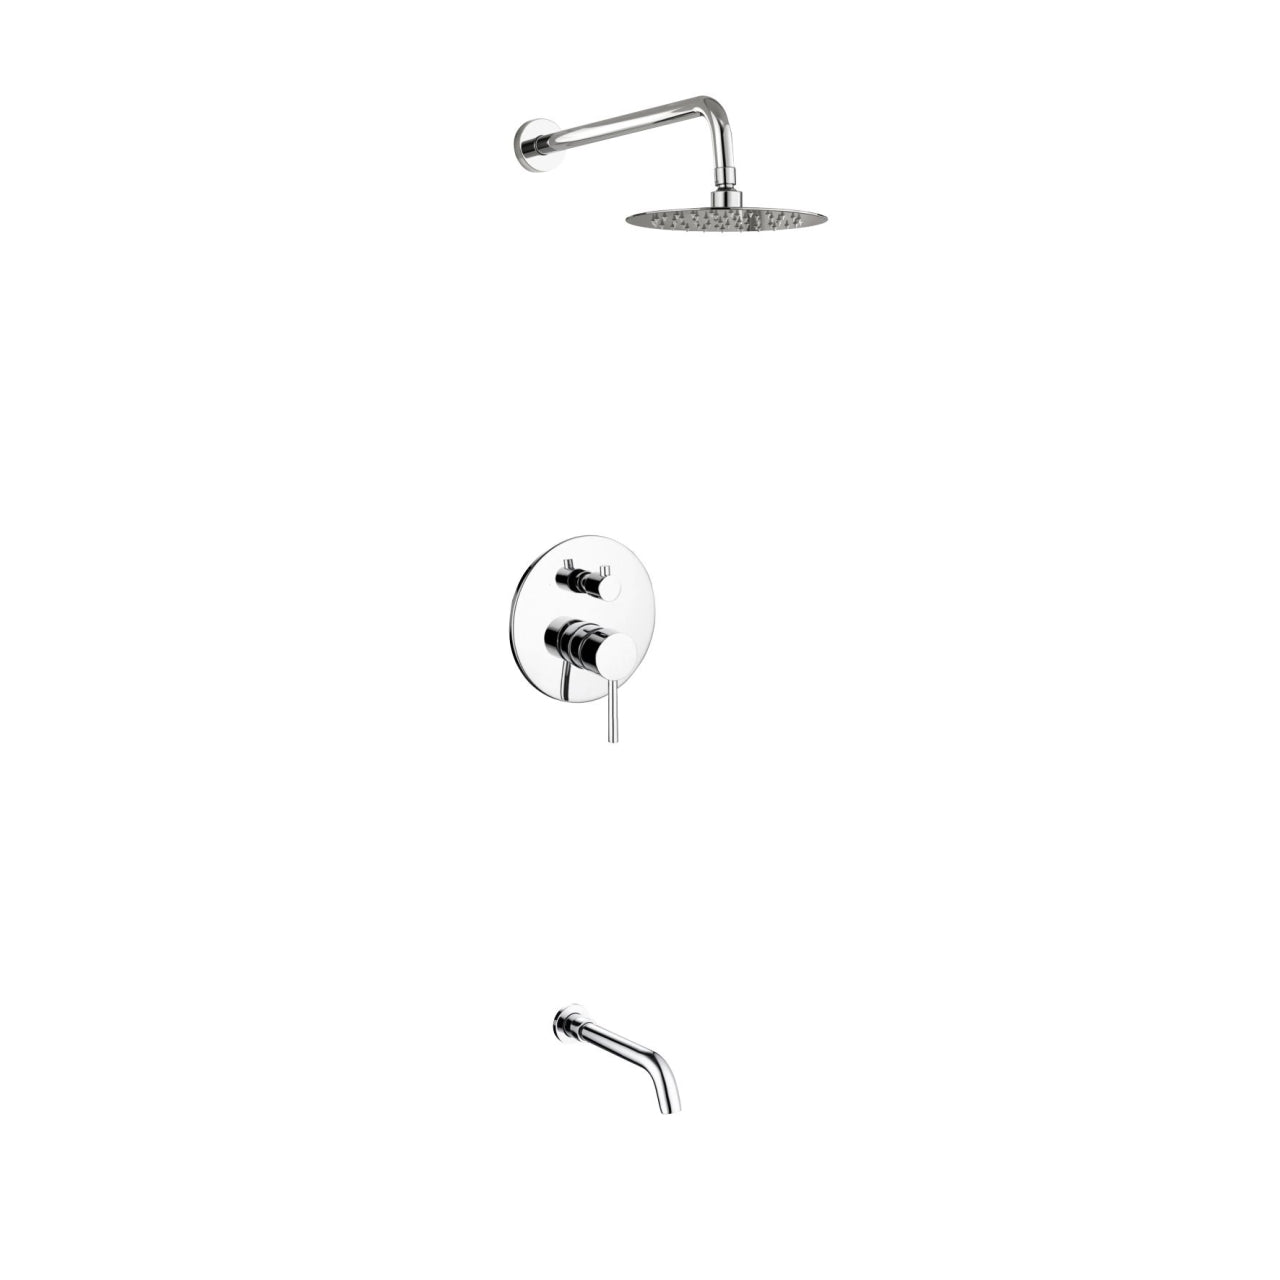 Aqua Rondo- Shower Faucet With 8″ Rain Shower and Tub Filler - CCSUPPLY INC.